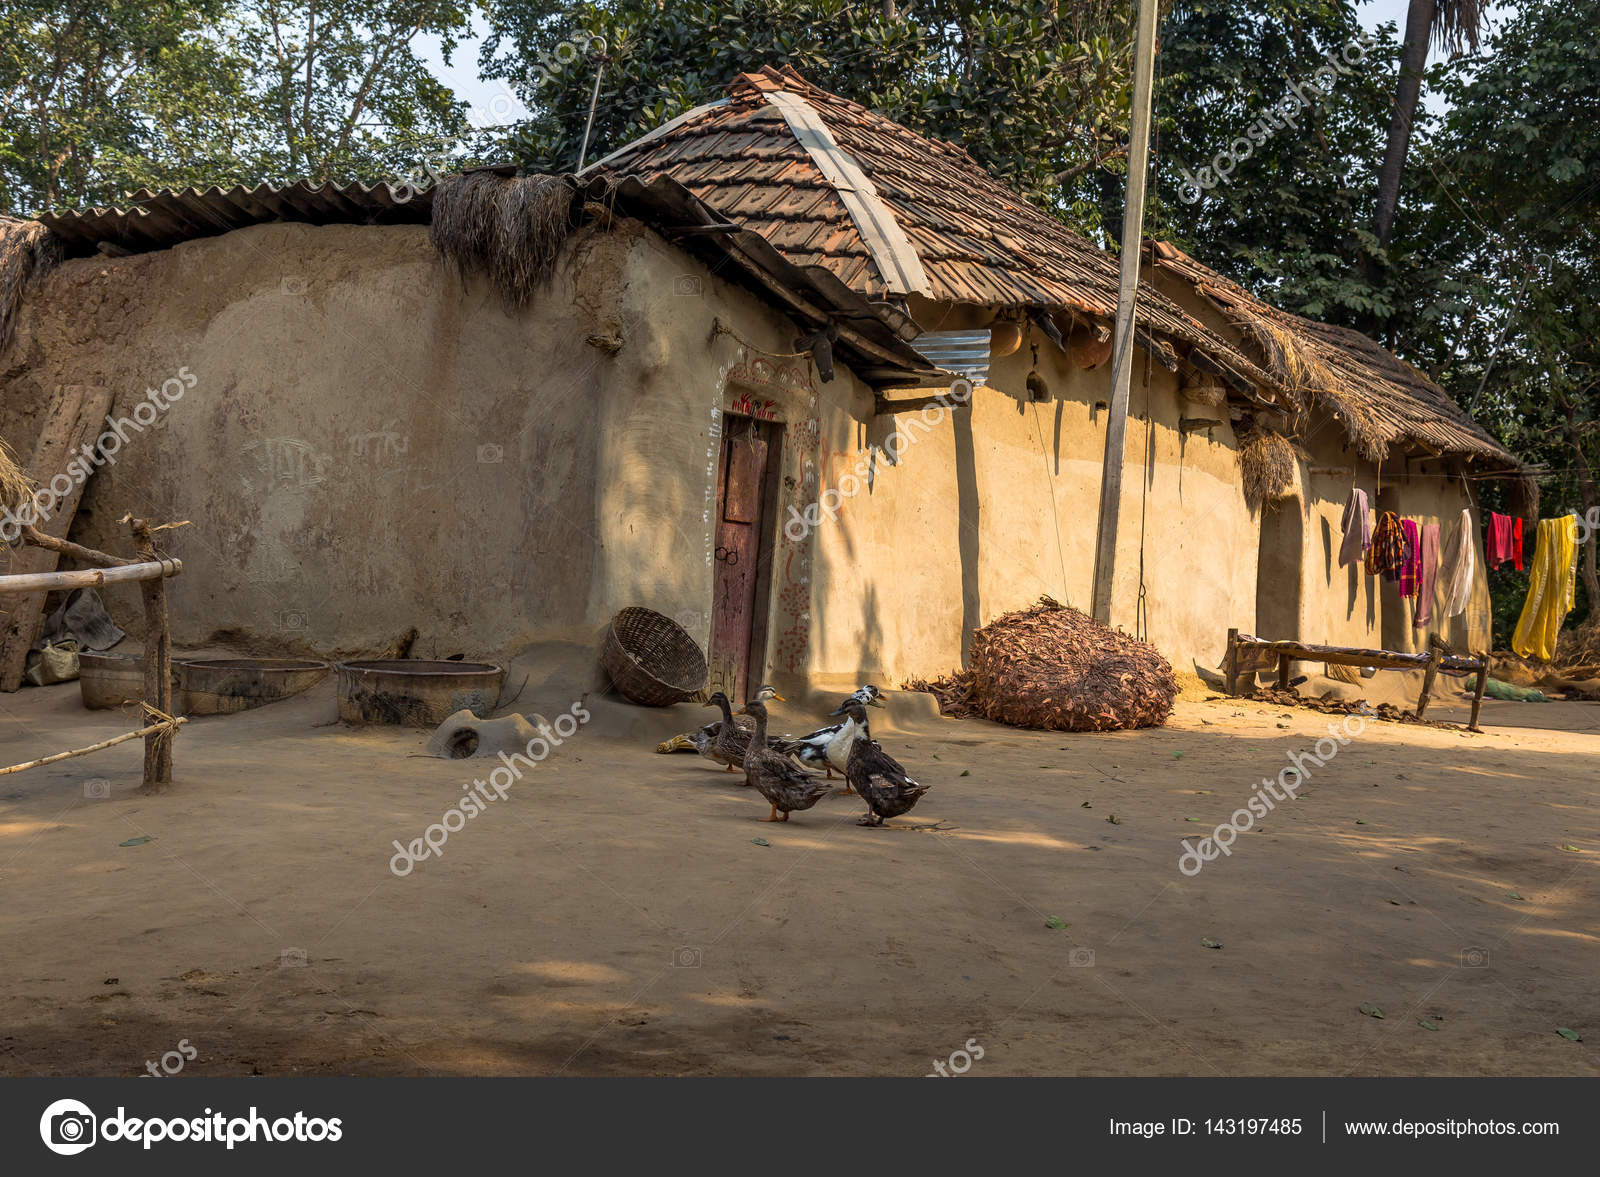 A Calm Indian Rural Village In Bankura West Bengal With Thatched Mud Huts Piled Haystack And Ducks On The Courtyard Photo By Deyroop